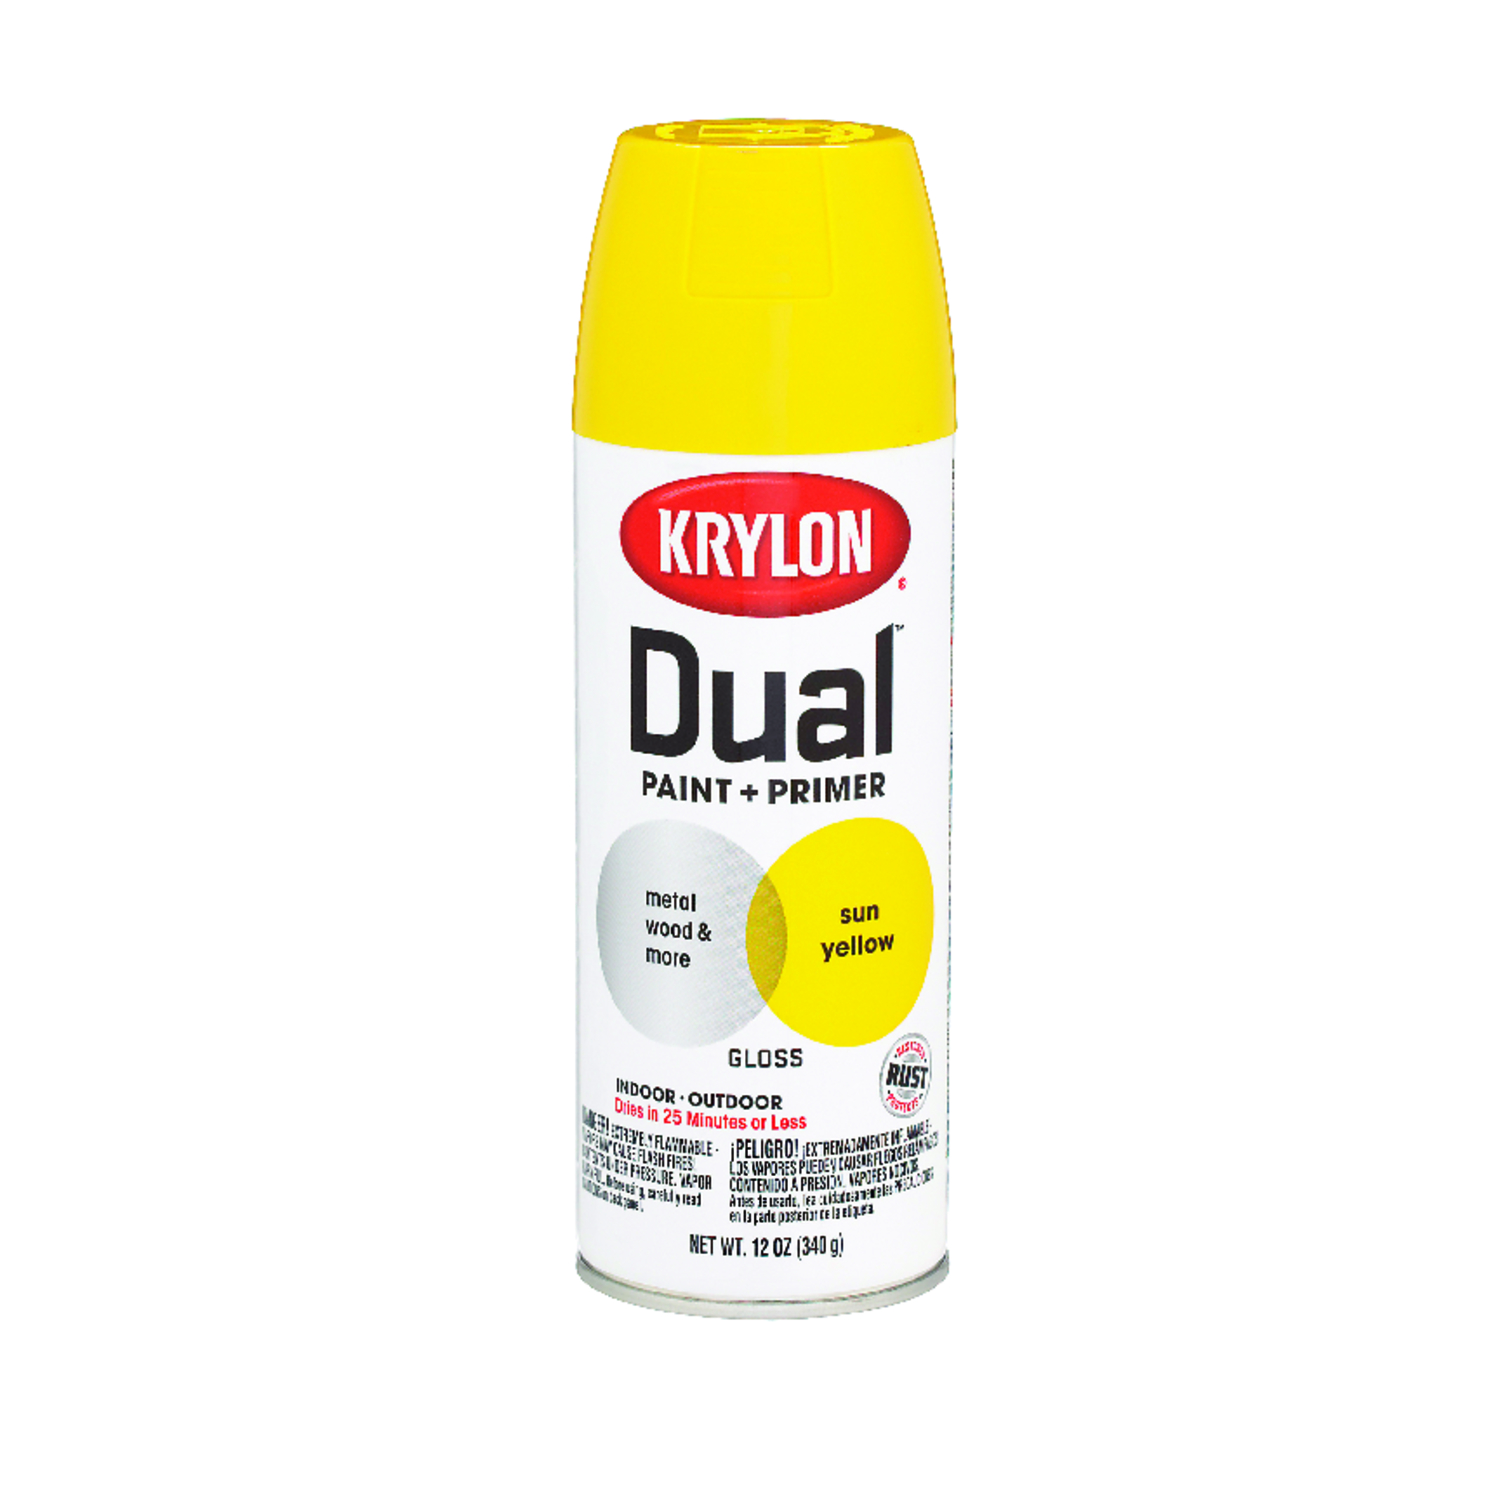 Krylon  Dual Superbond  Gloss  Sun Yellow  Paint + Primer Spray  12 oz.